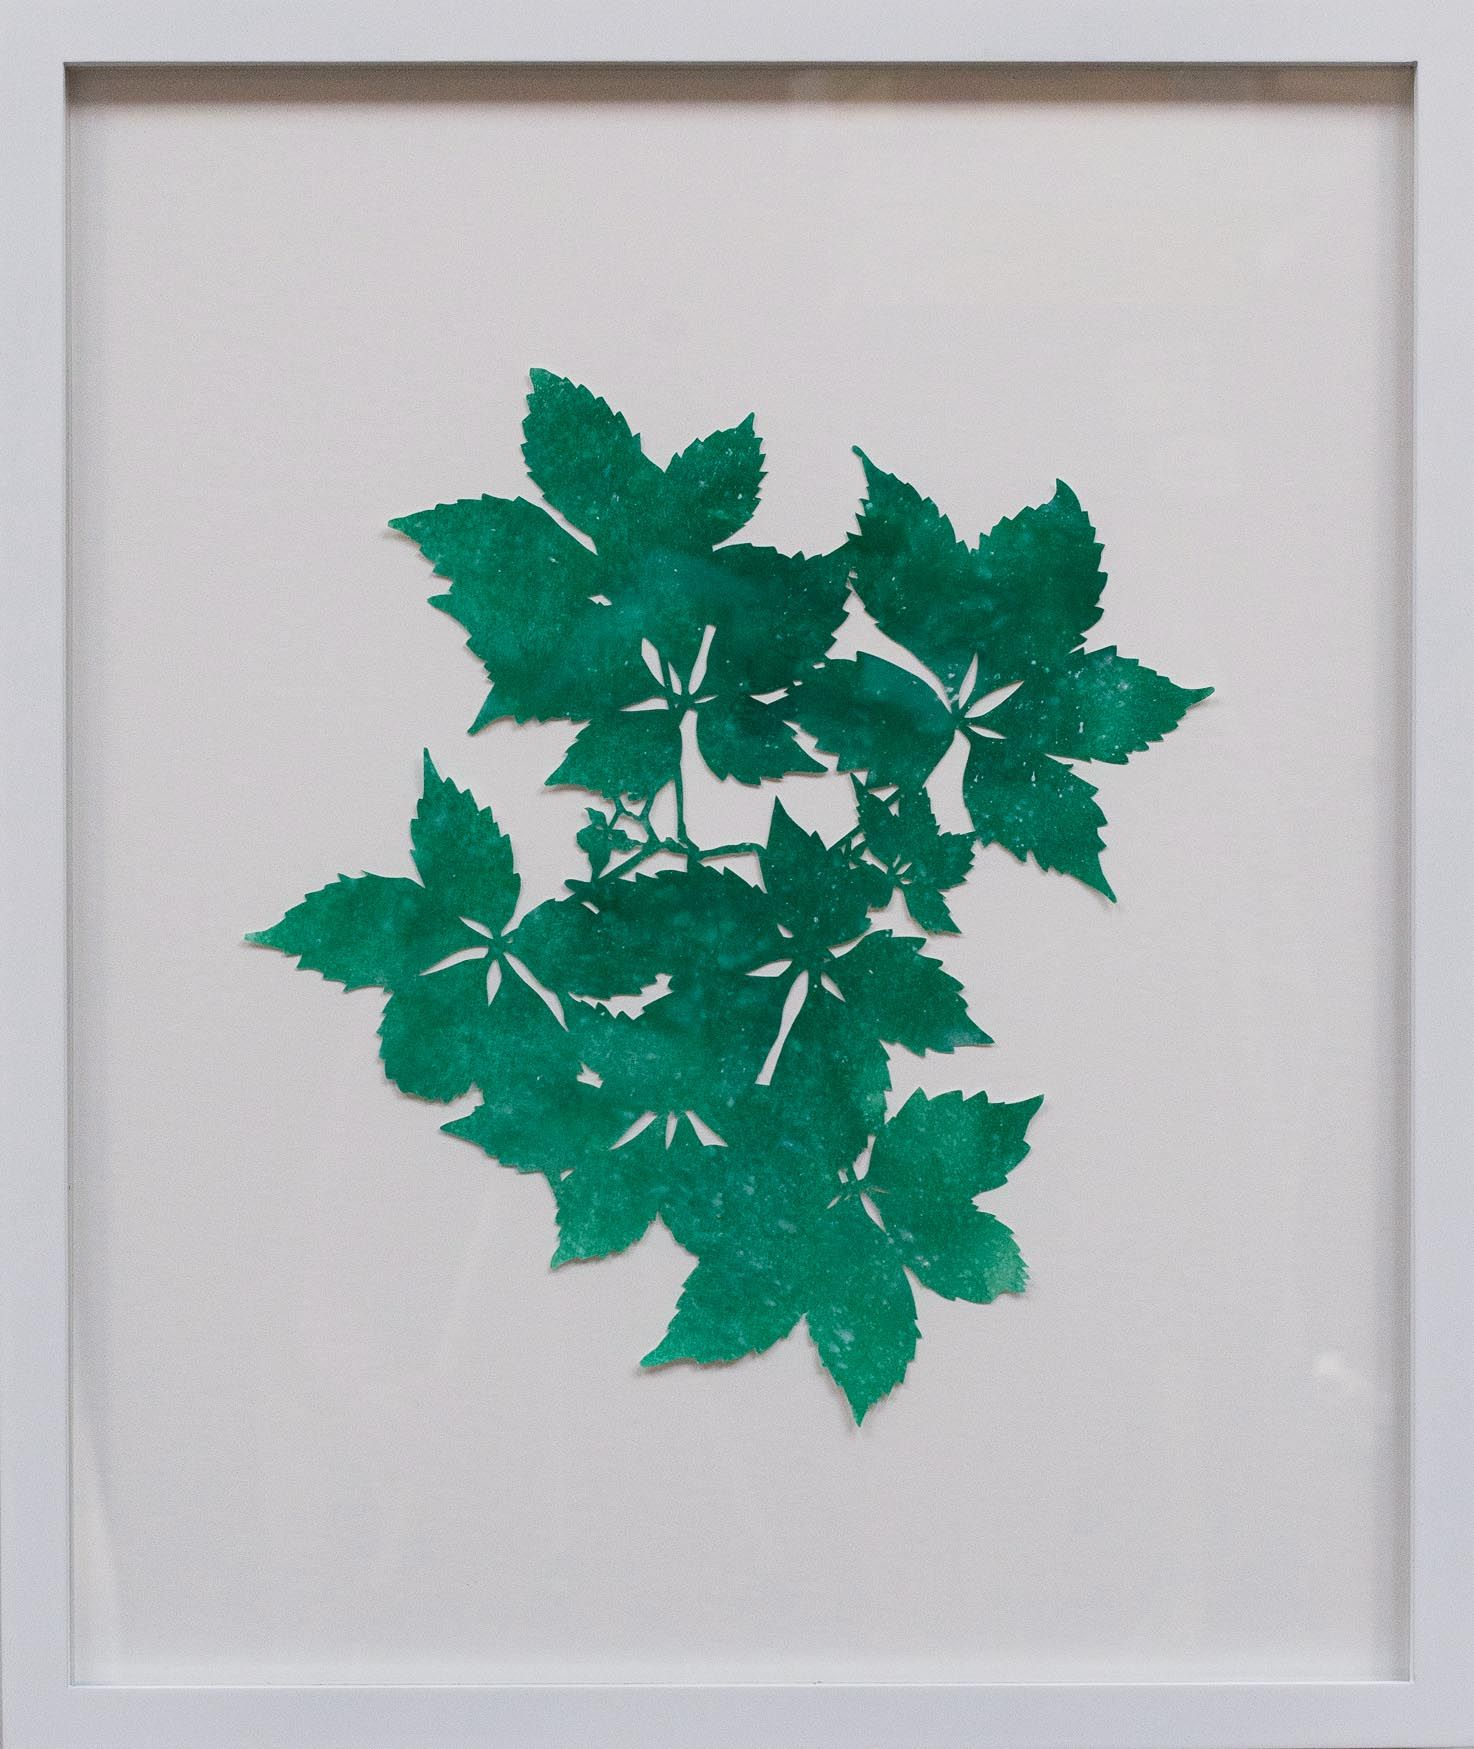 Hannah Cole  Virginia Creeper, 2018  watercolor on cut paper  Framed: 24h x 20w in 60.96h x 50.80w cm  HC_041